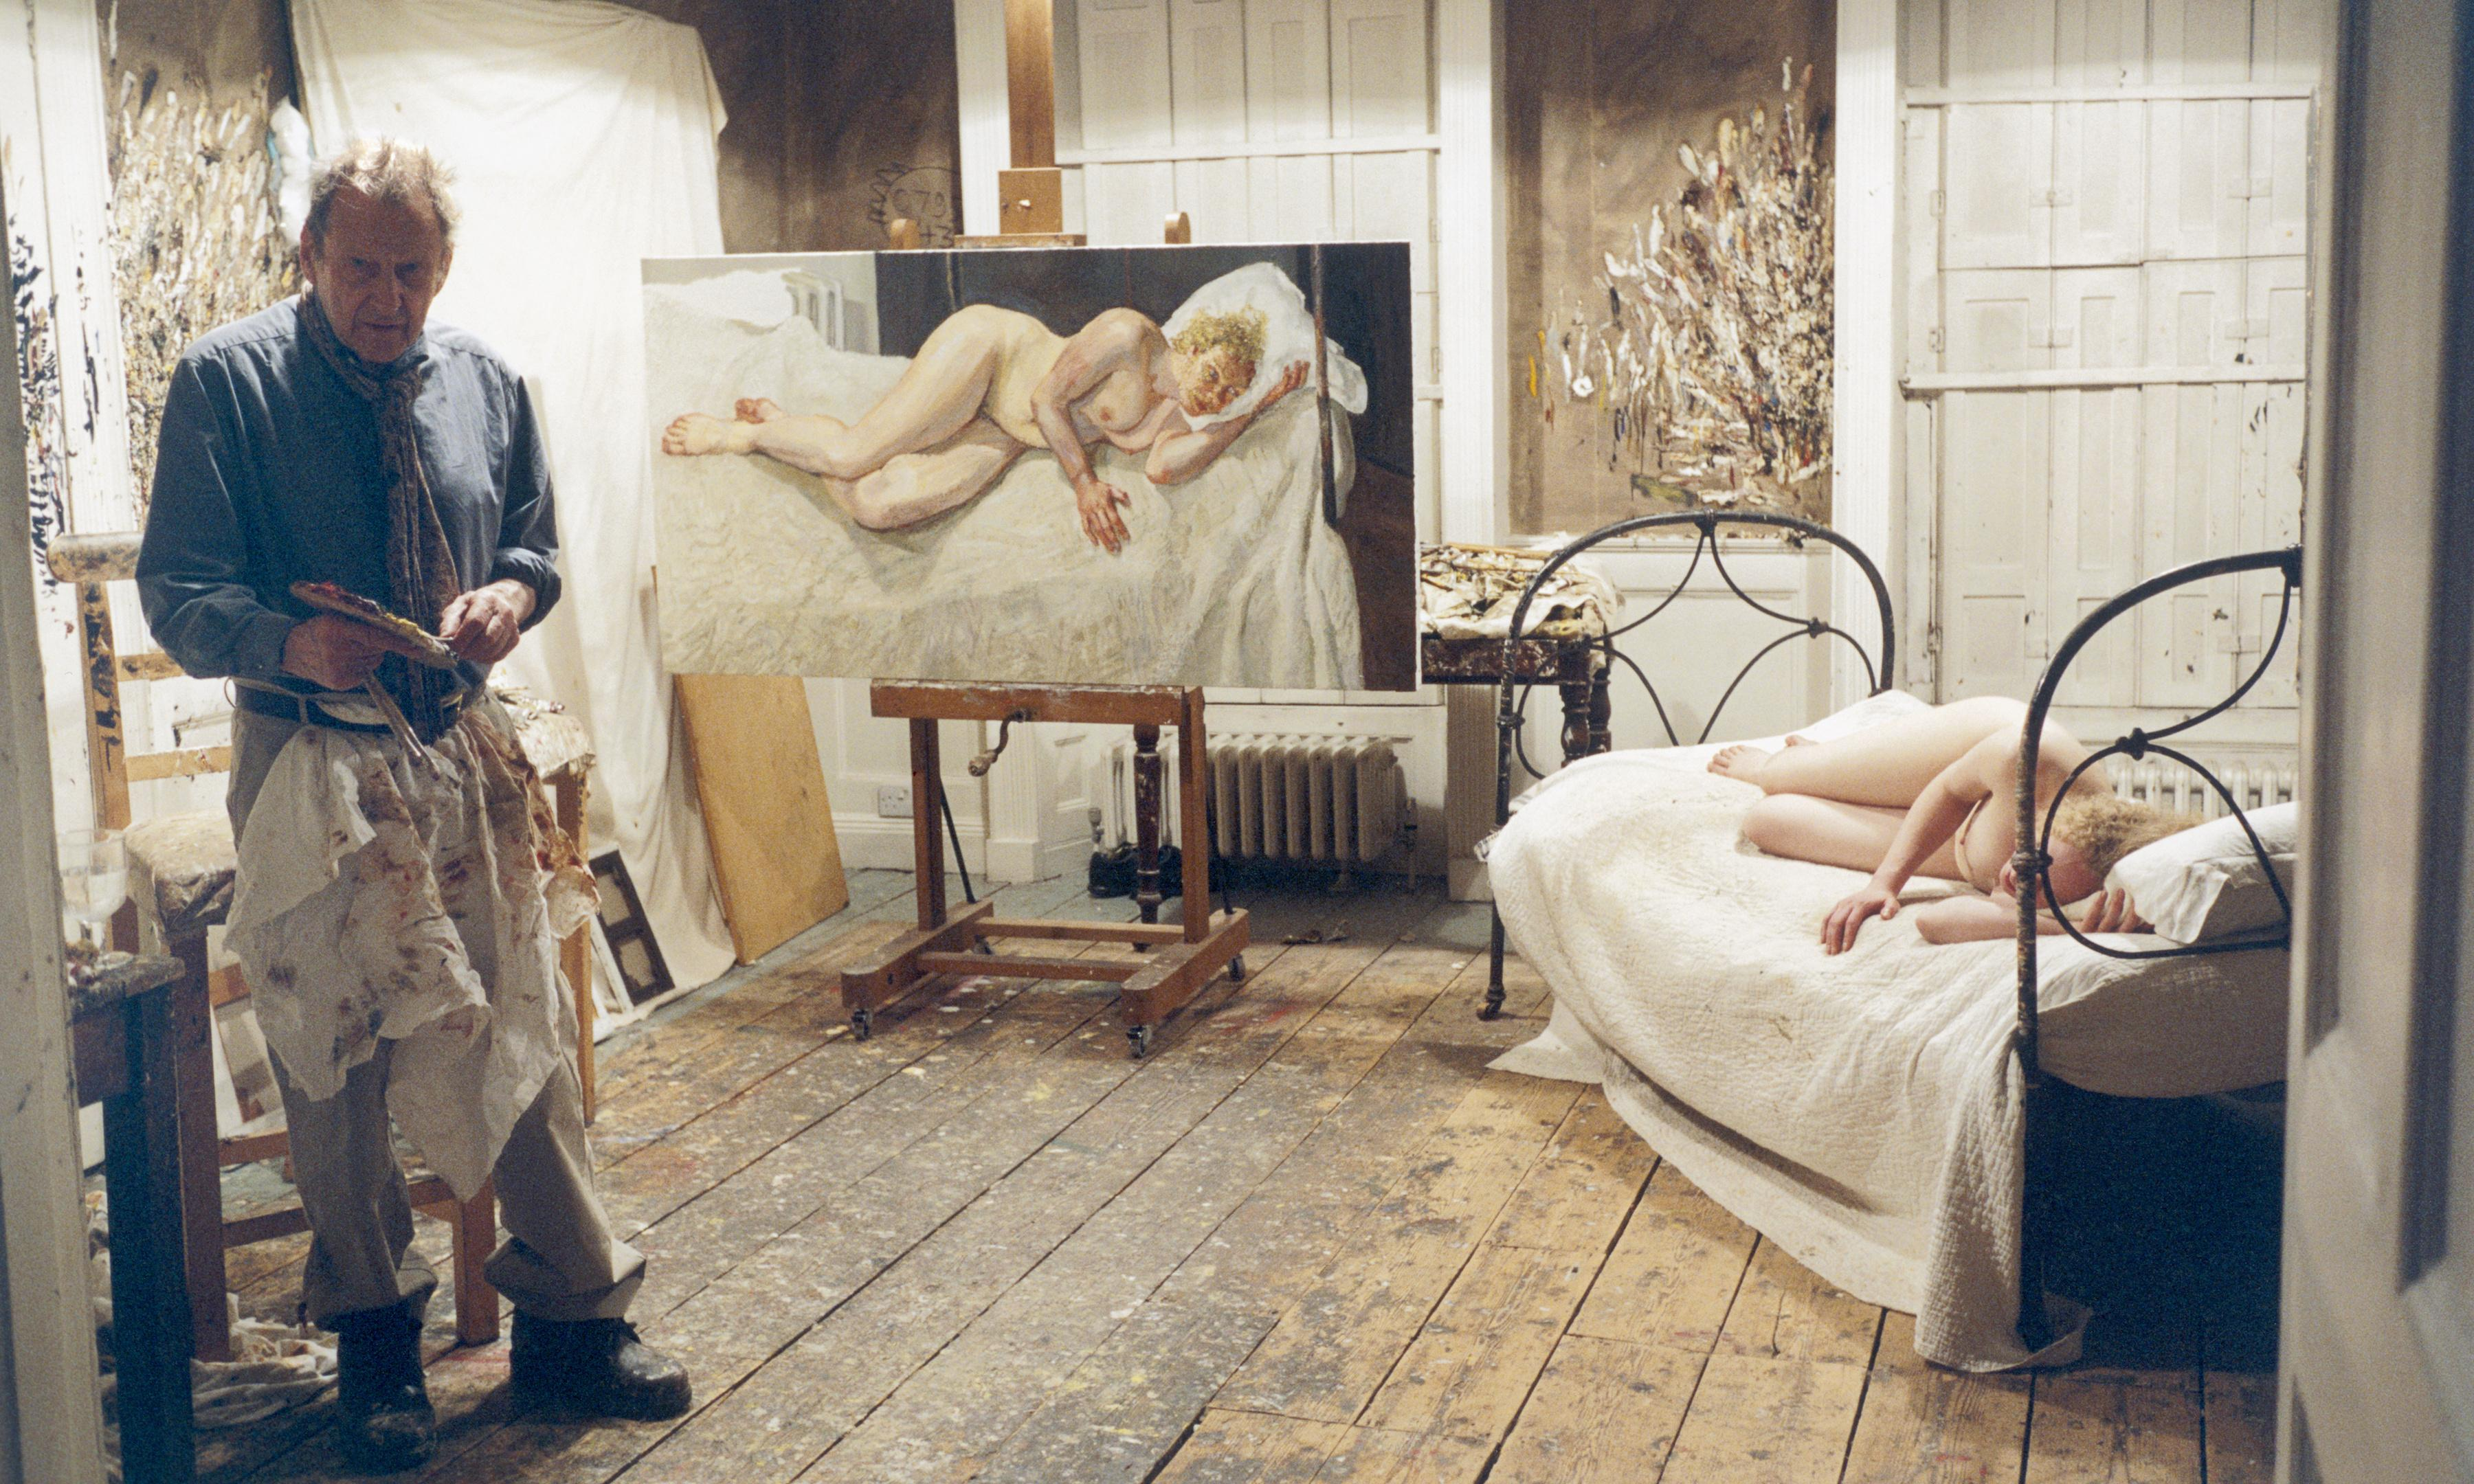 'I was Lucian Freud's spare pair of eyes'